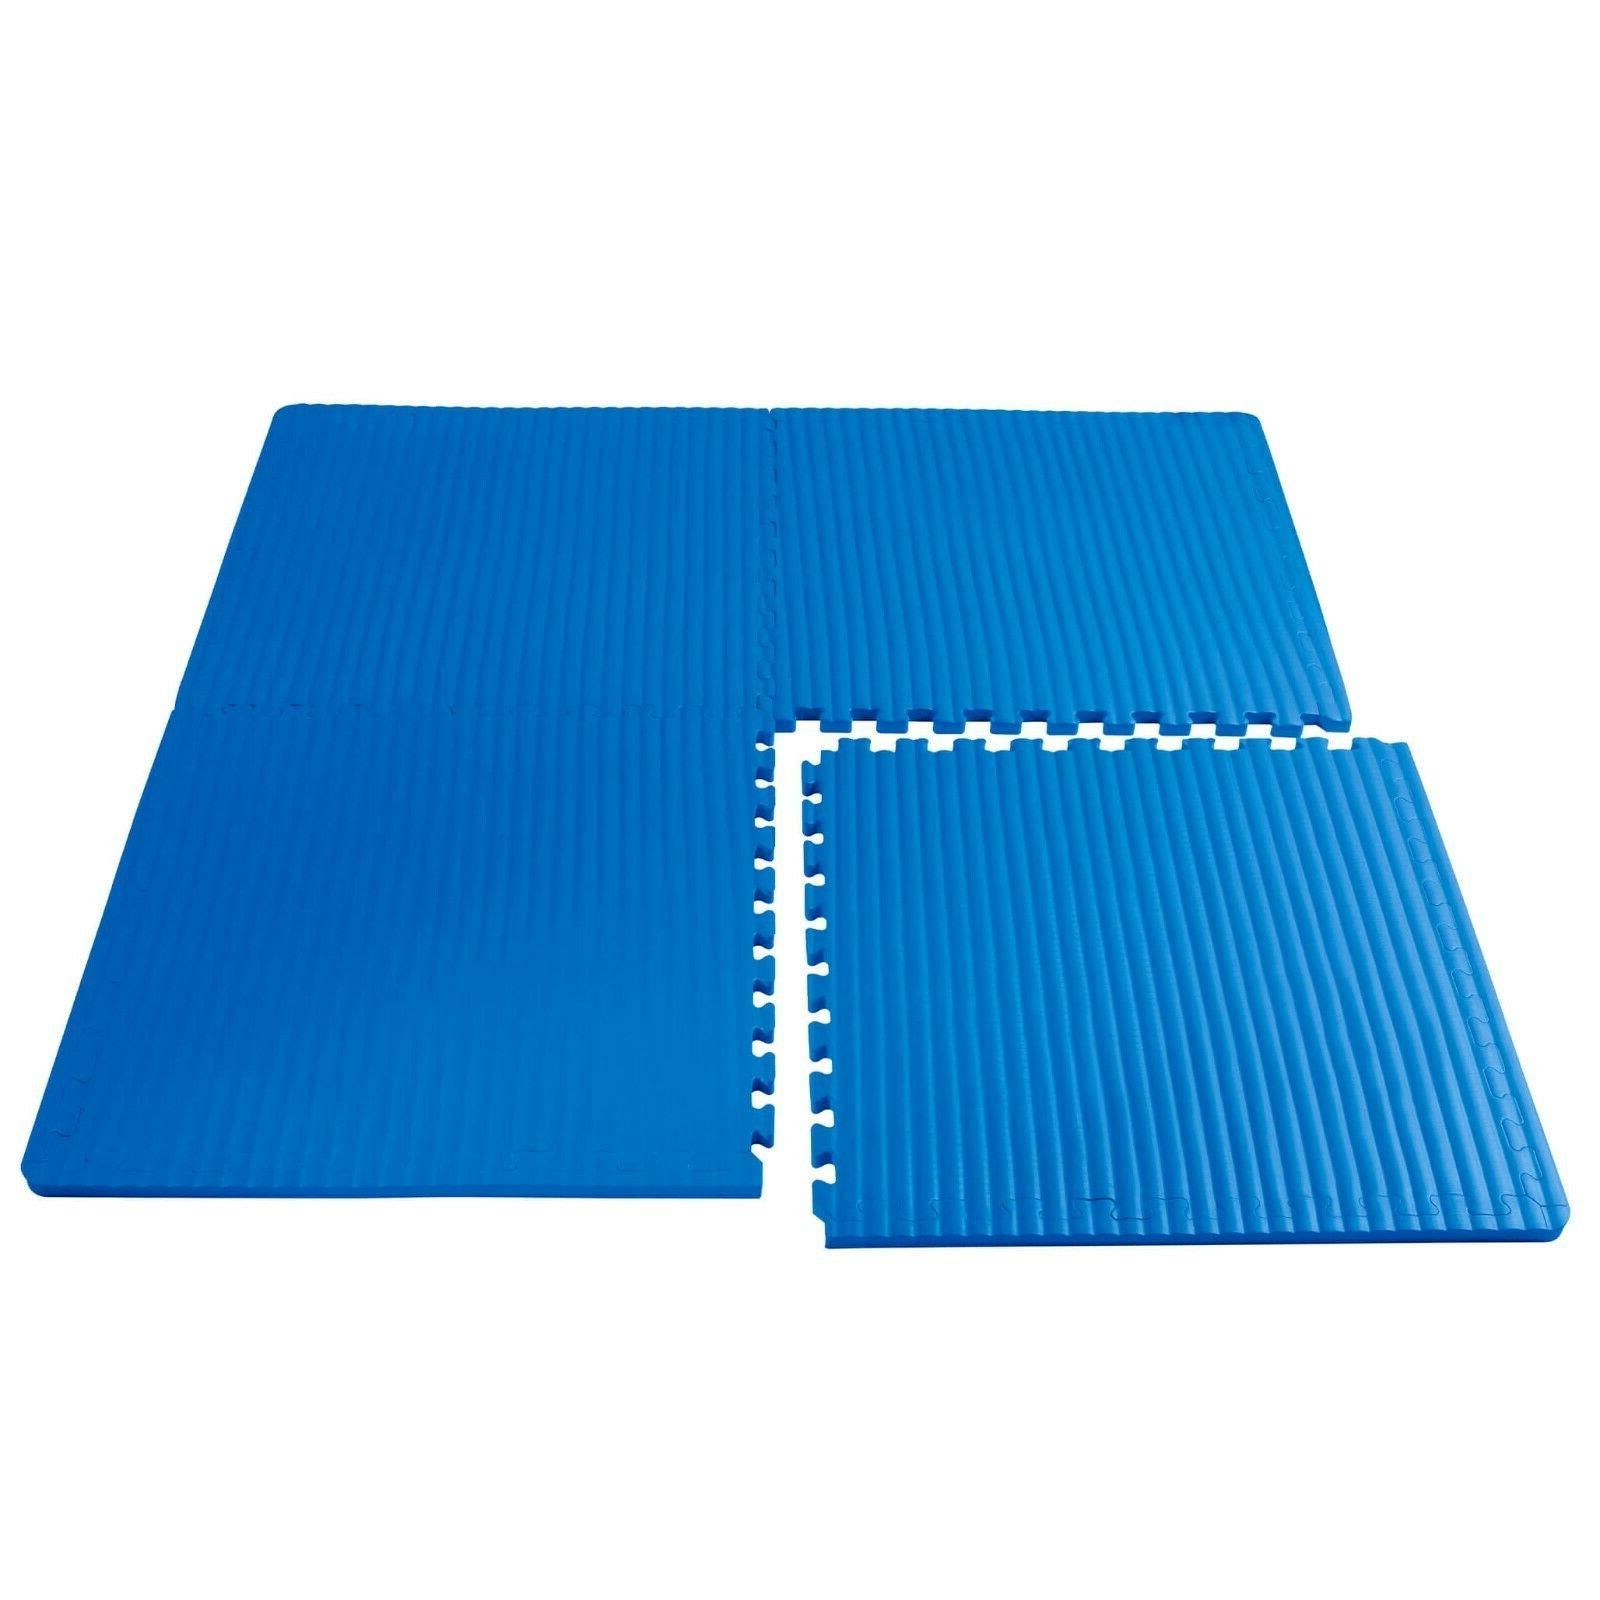 48 Floor Mats Gym Exercise